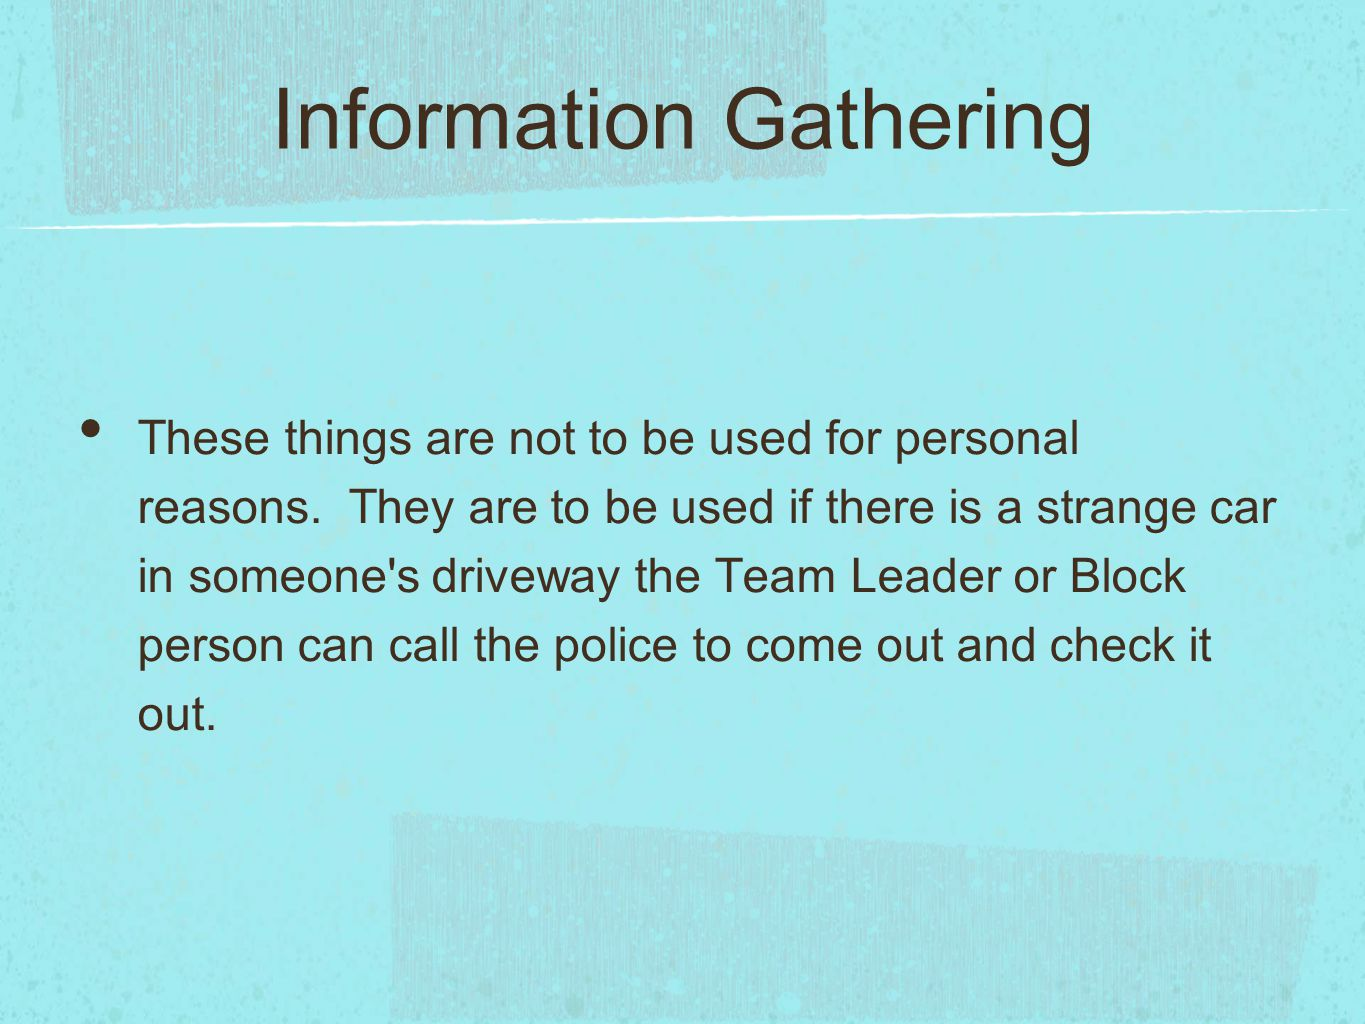 Information Gathering These things are not to be used for personal reasons.